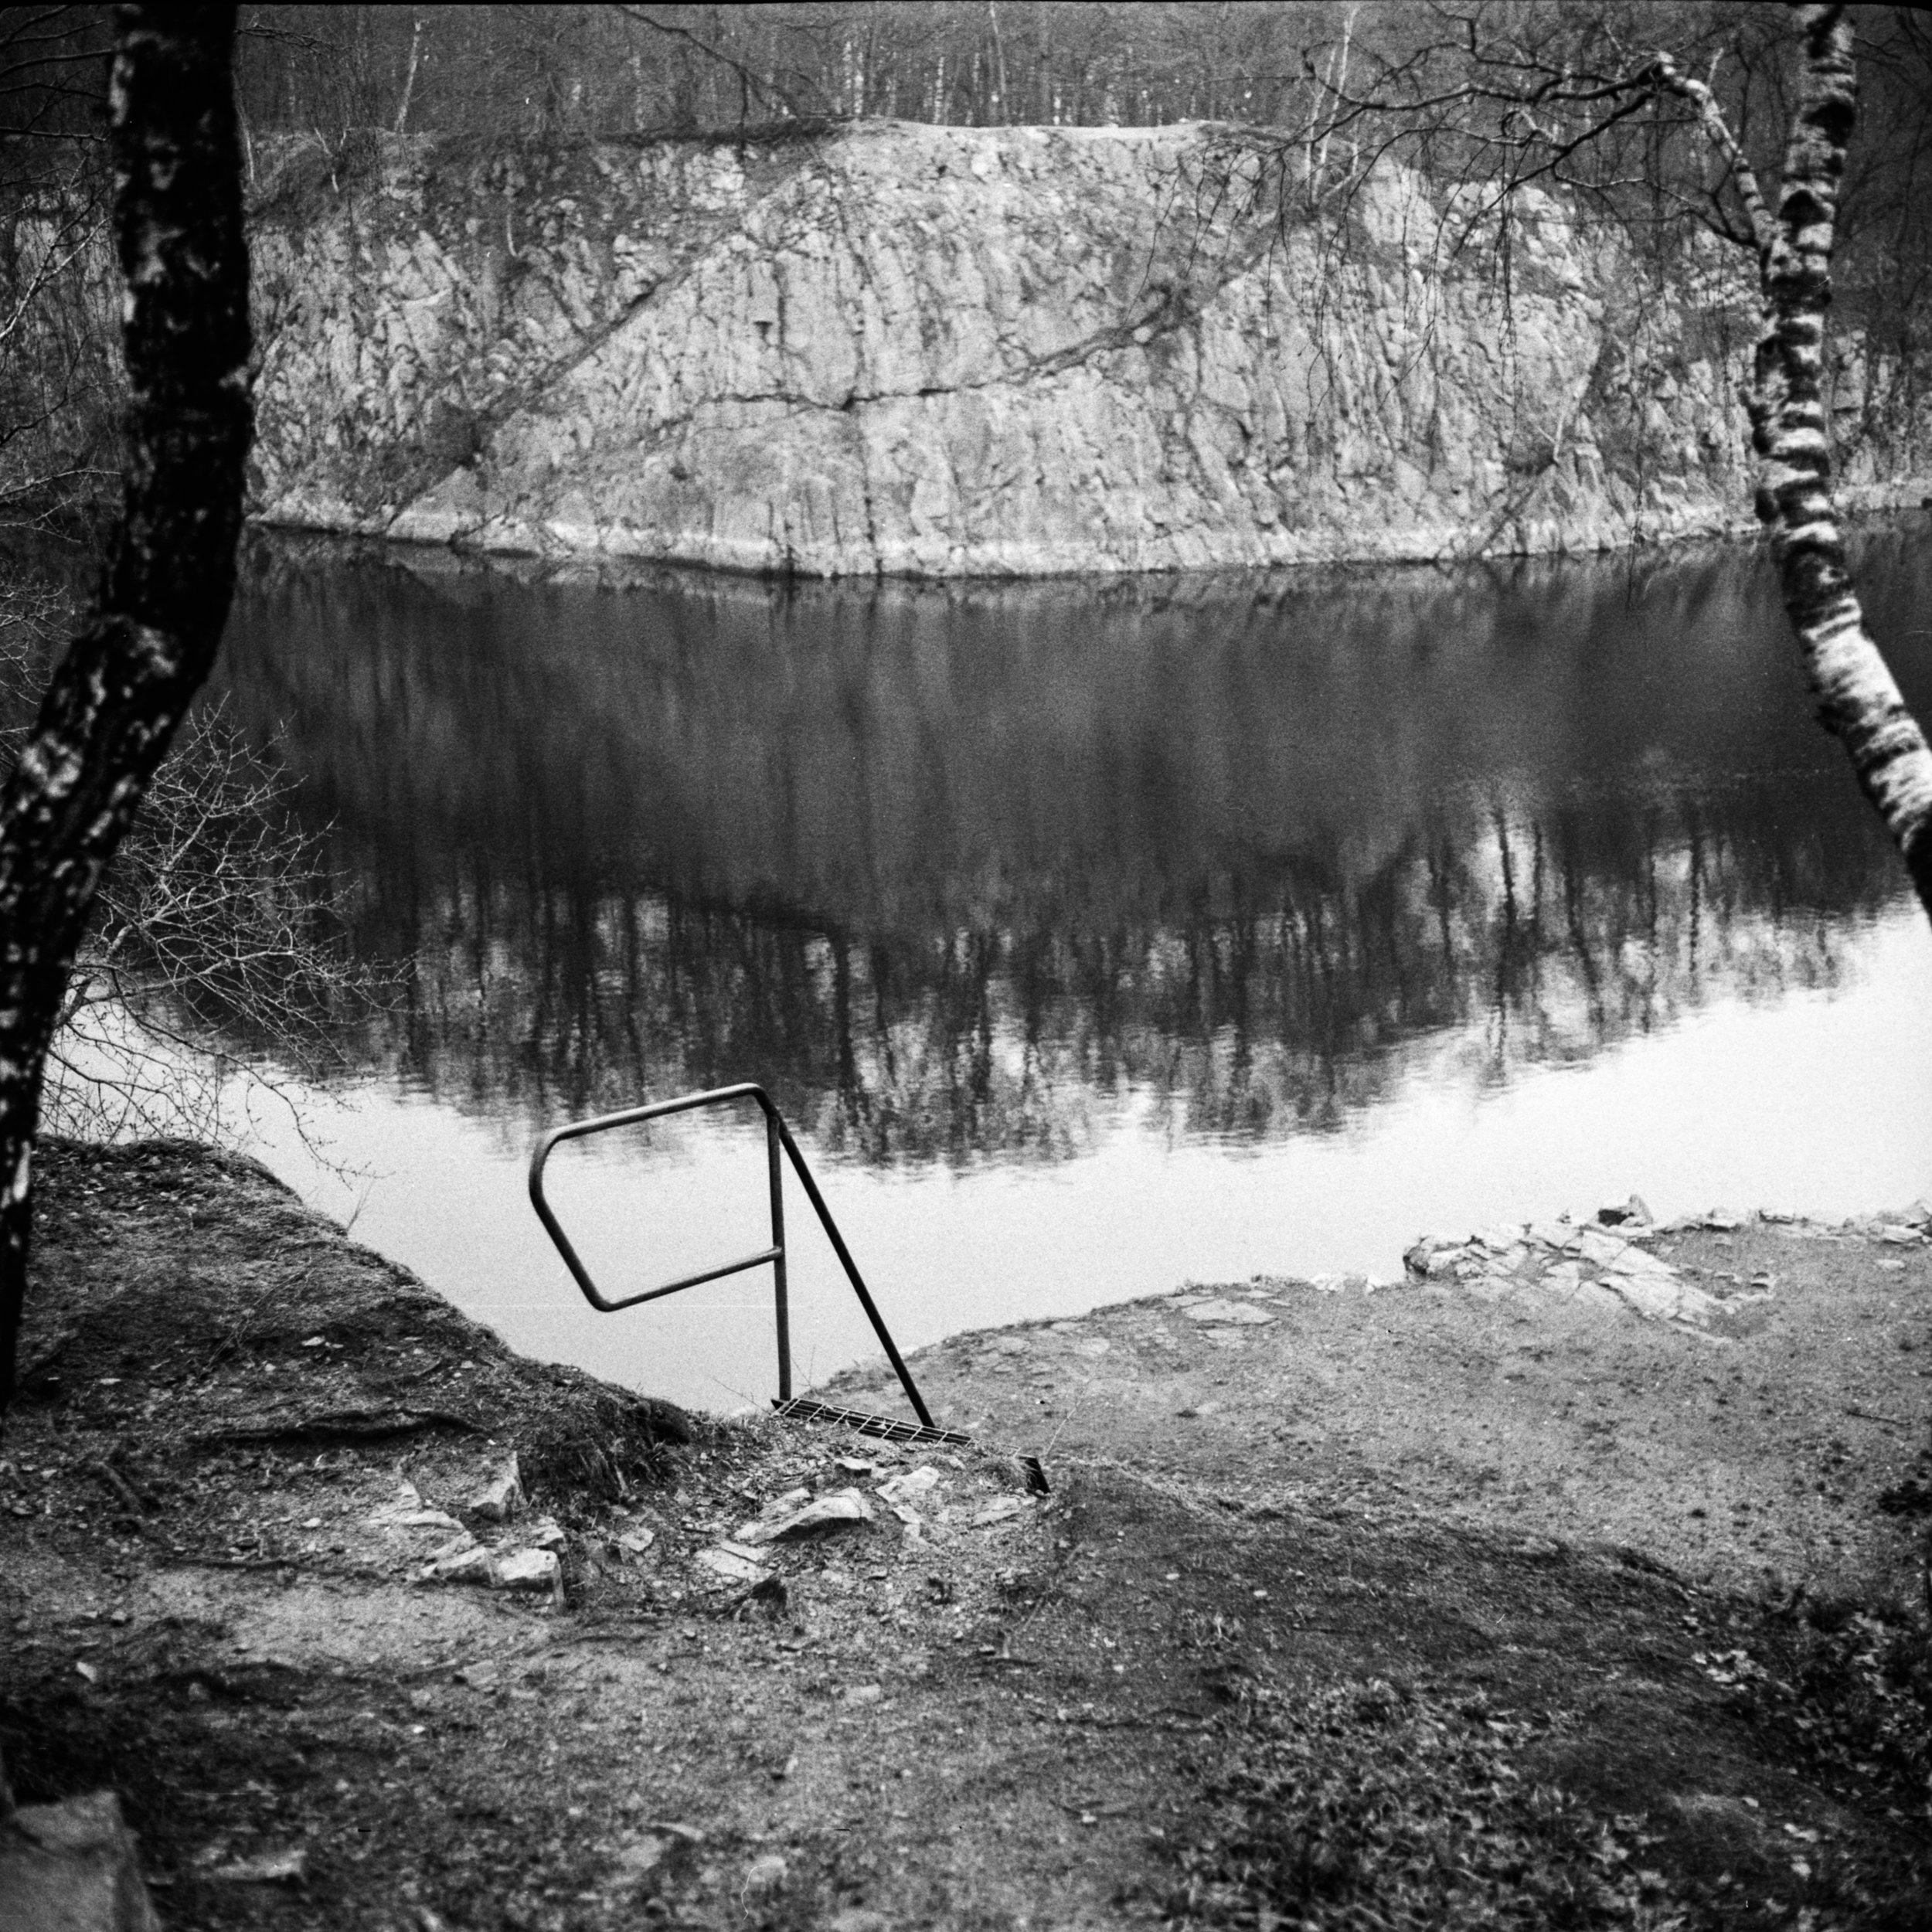 The 365 Project 2019: Day 7 - At the Old Quarry